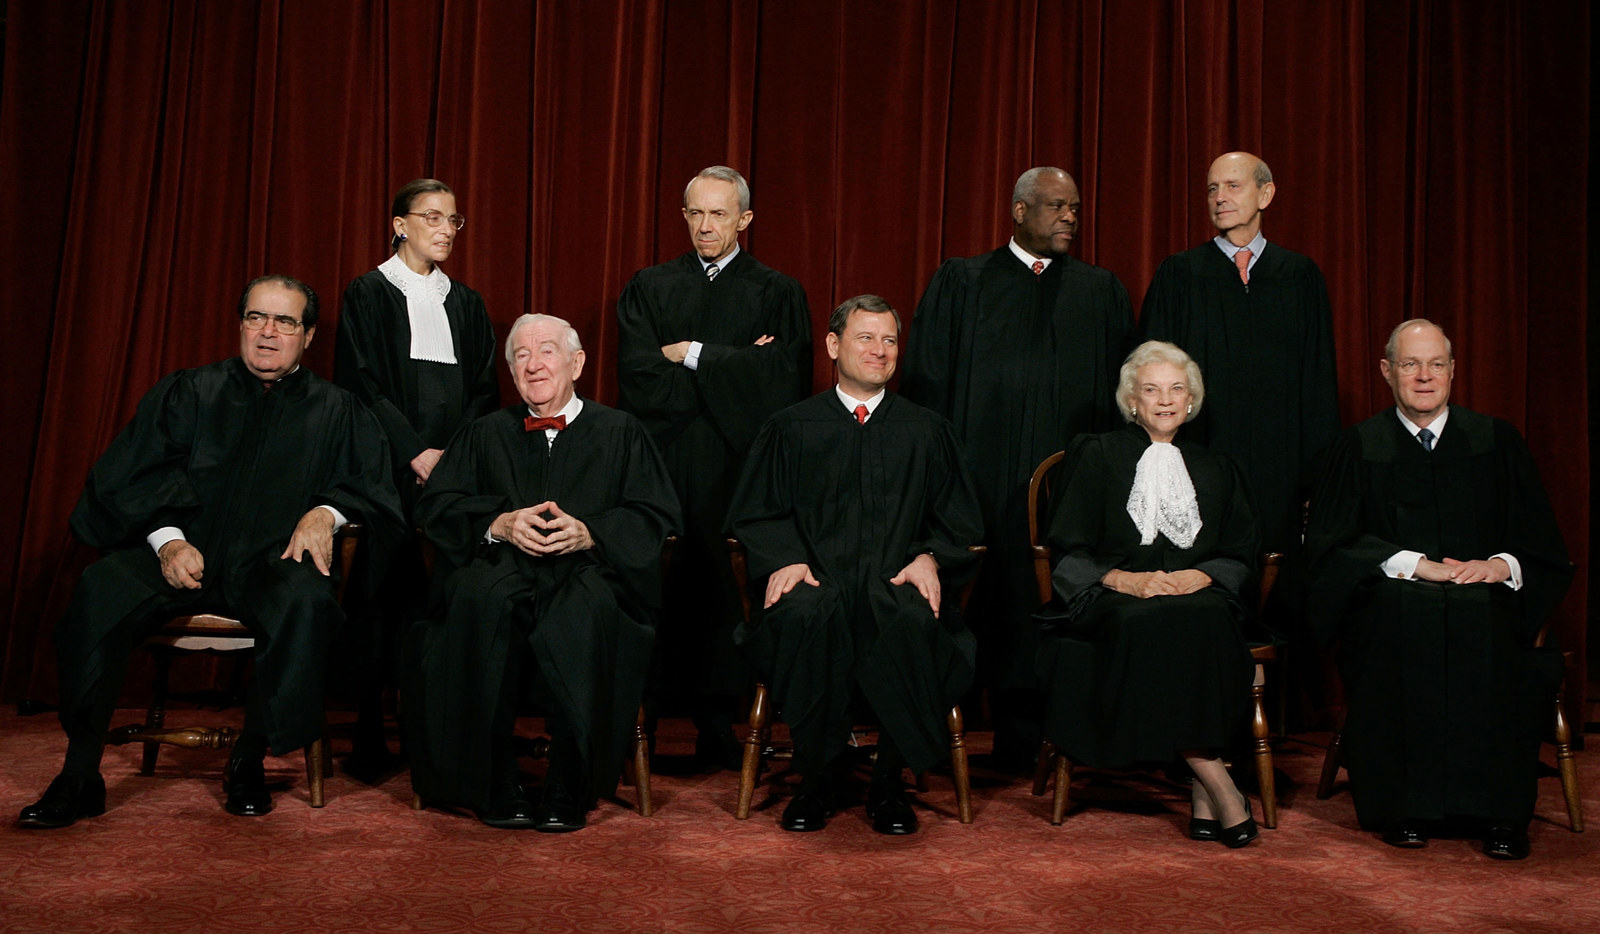 O'Connor with the other justices in 2005.